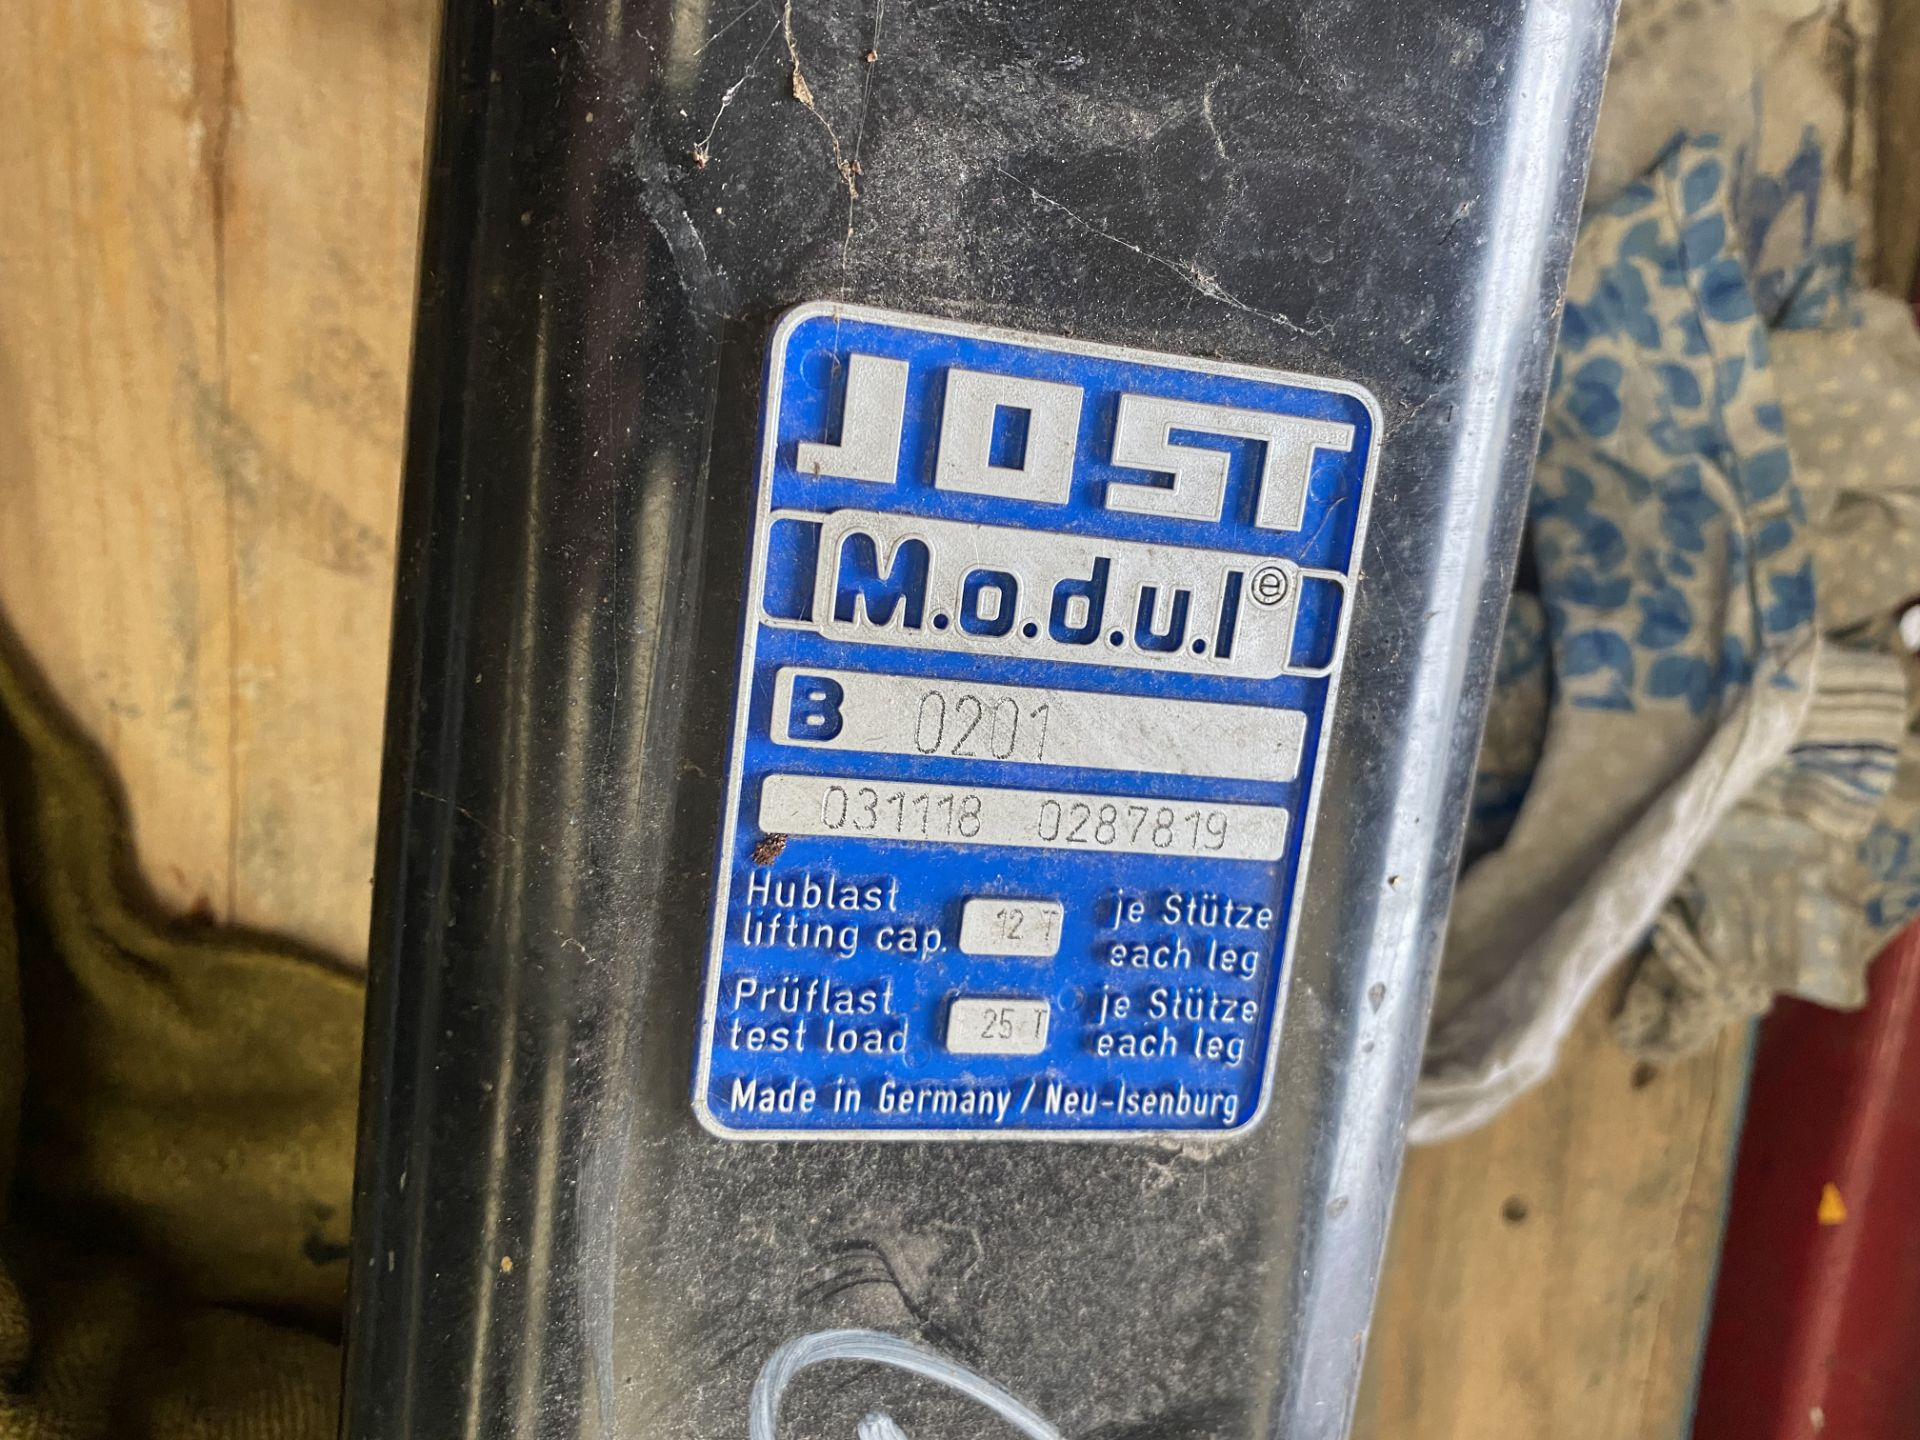 Jost Modul 0201 Tractor Unit Landing Legs, as set out on pallet(this lot is subject to 15% buyer' - Image 4 of 4